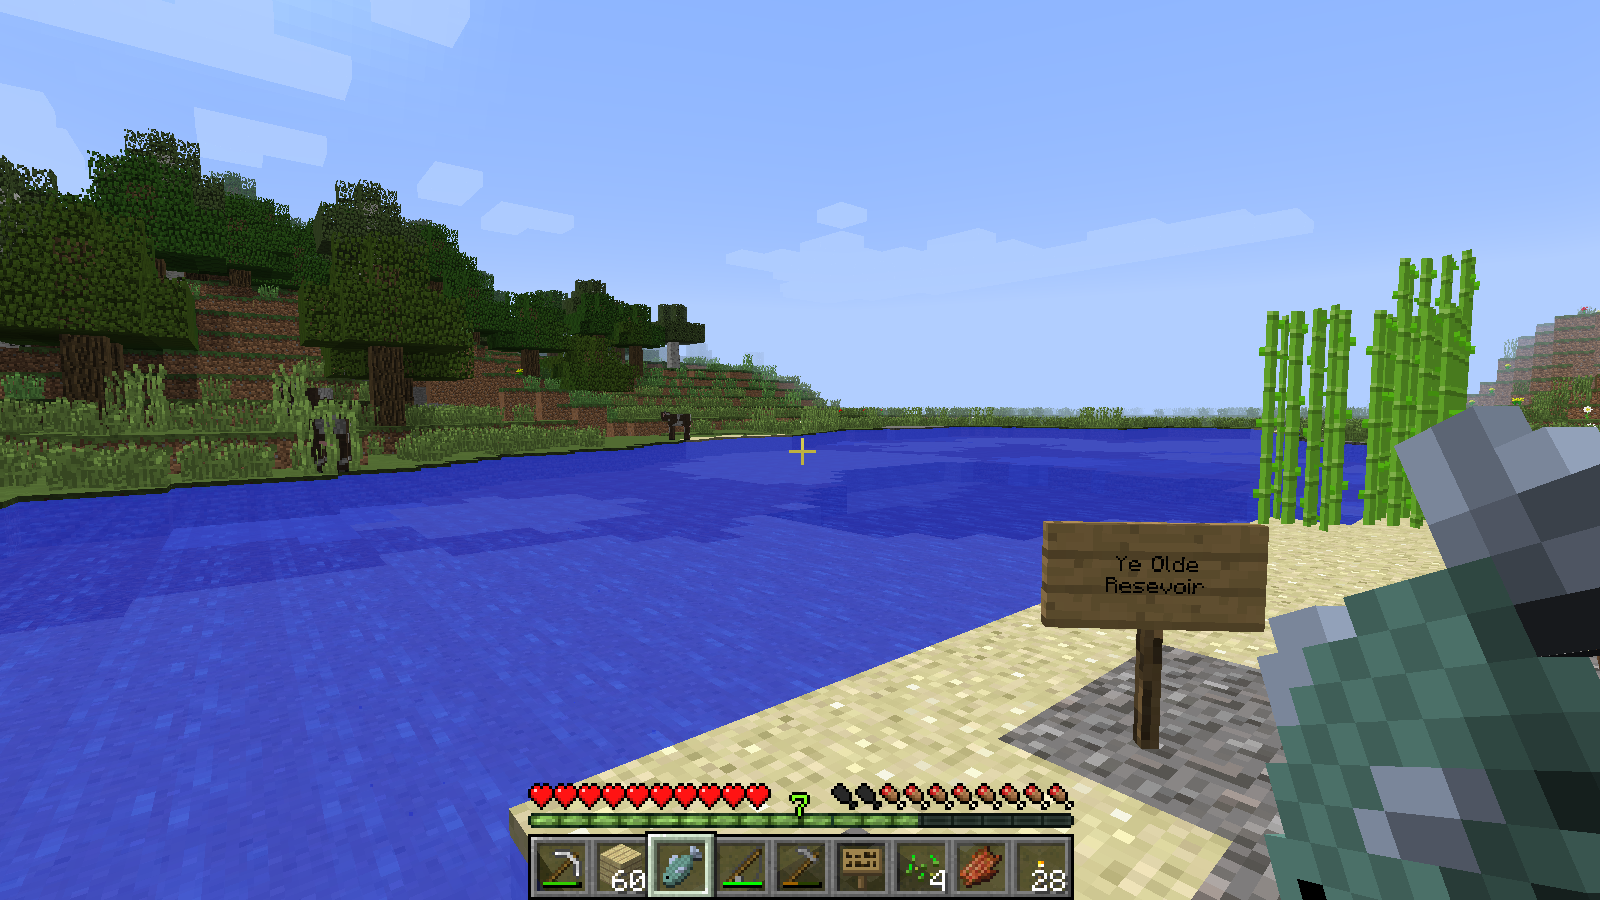 Minecraft Fishing [Guide] |